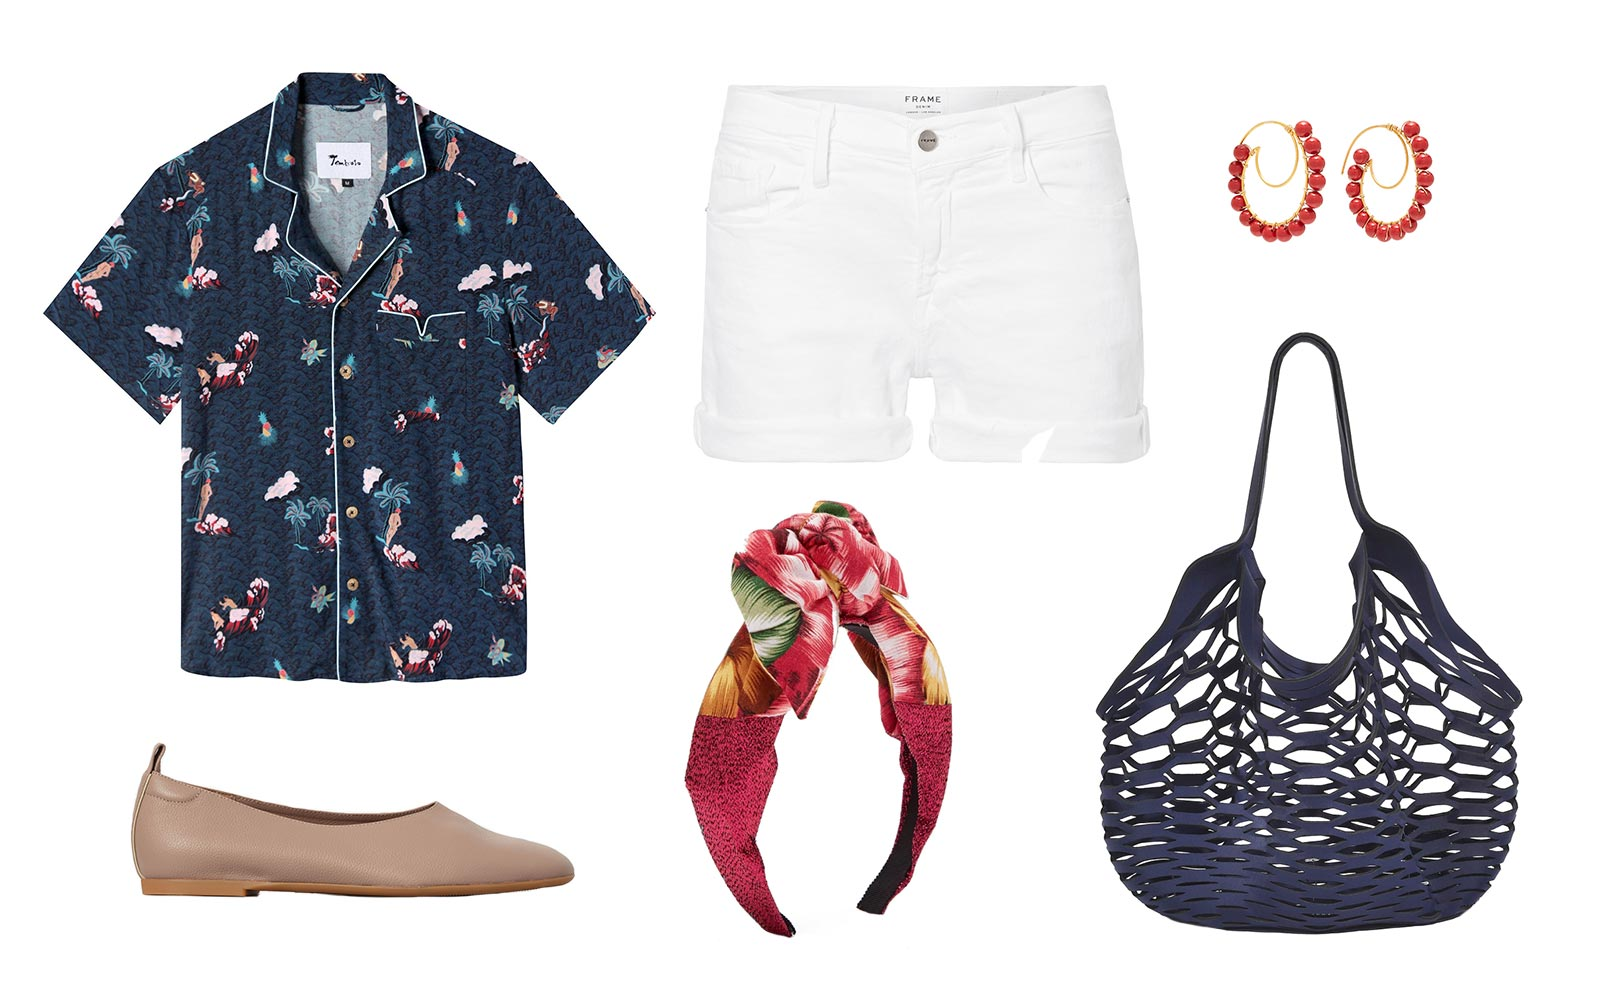 Hawaiian shirt styling